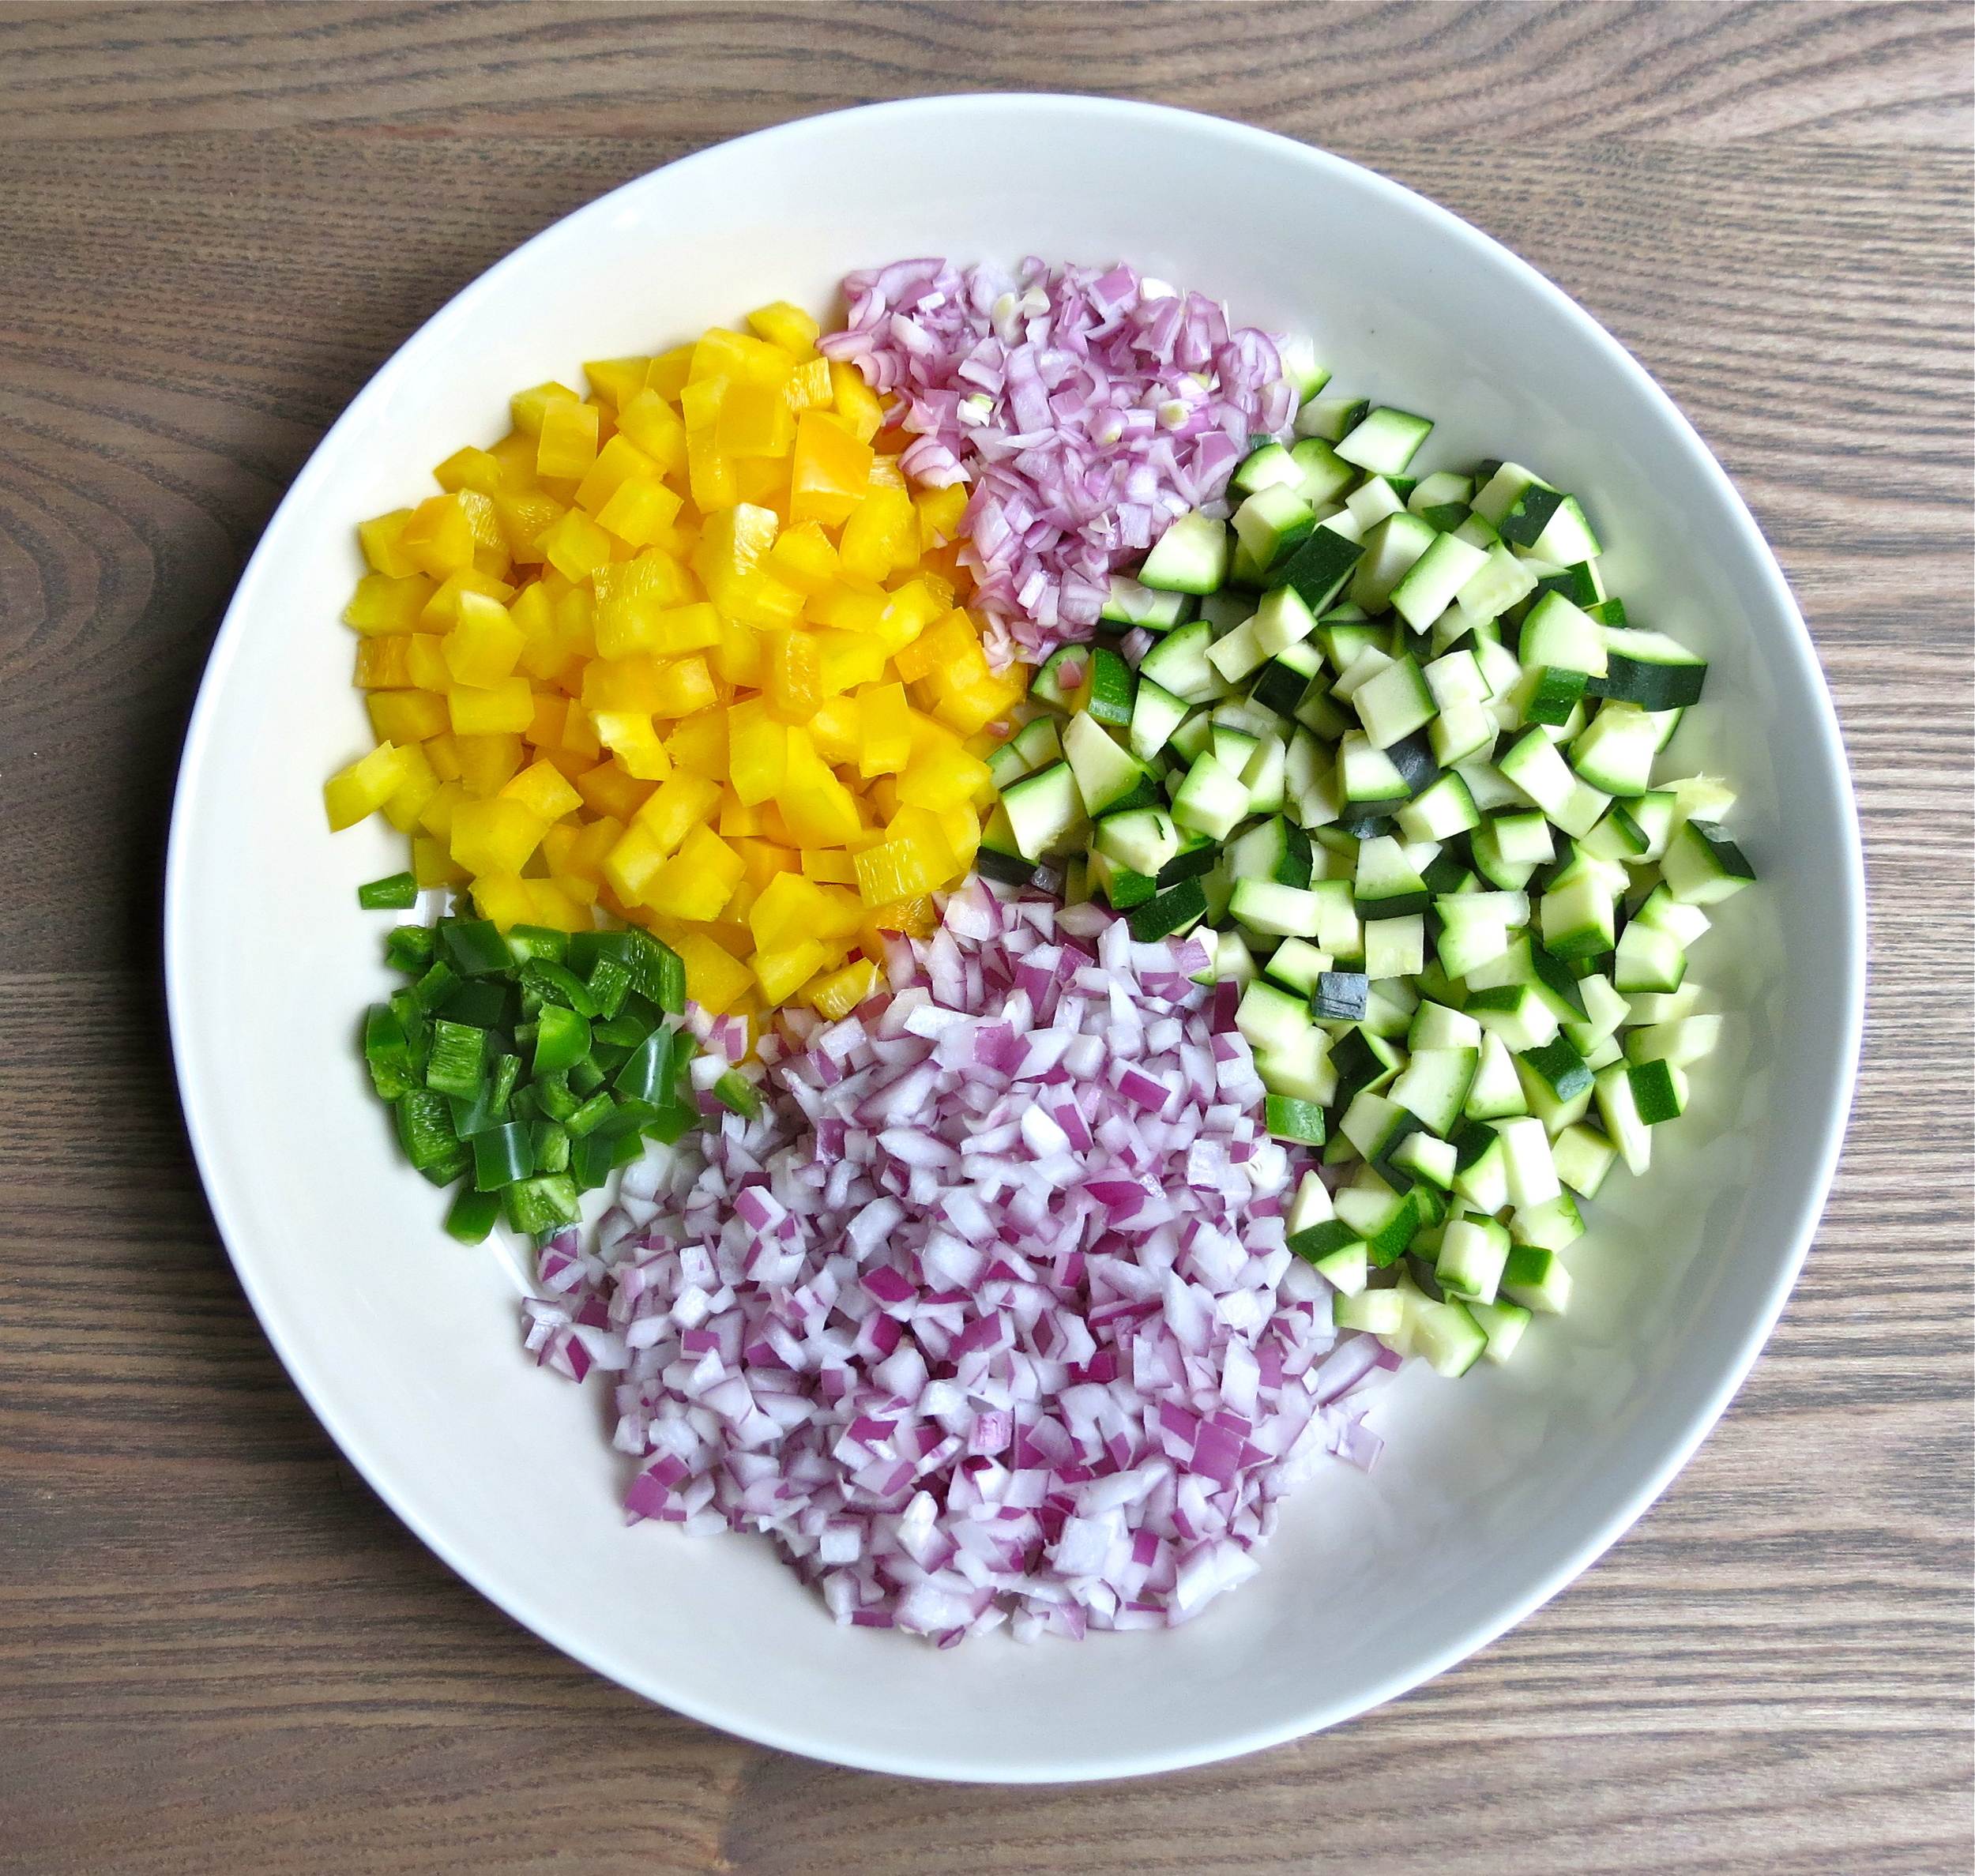 Colorful variety of vegetables.